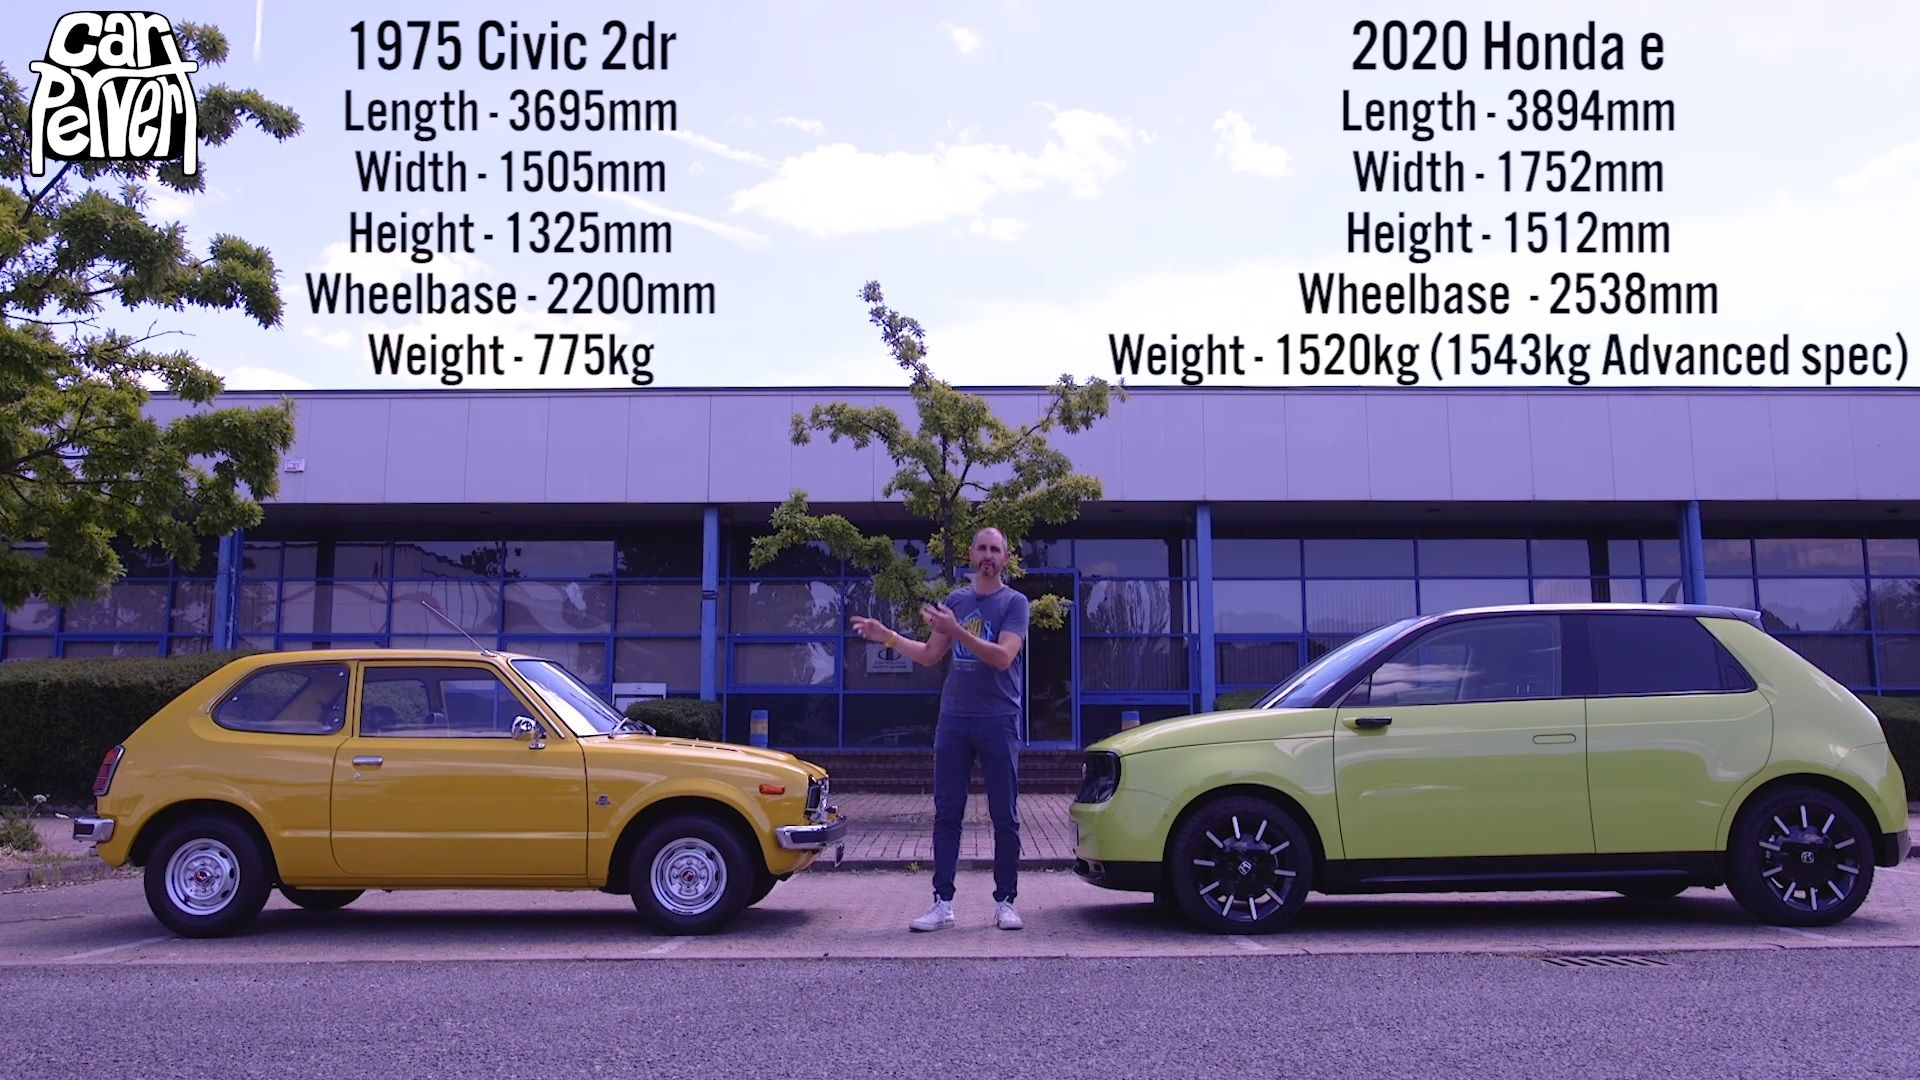 Here S How The Retro Styled Honda E Holds Up Against The Classic Civic Top Speed In 2020 Civic Honda Retro